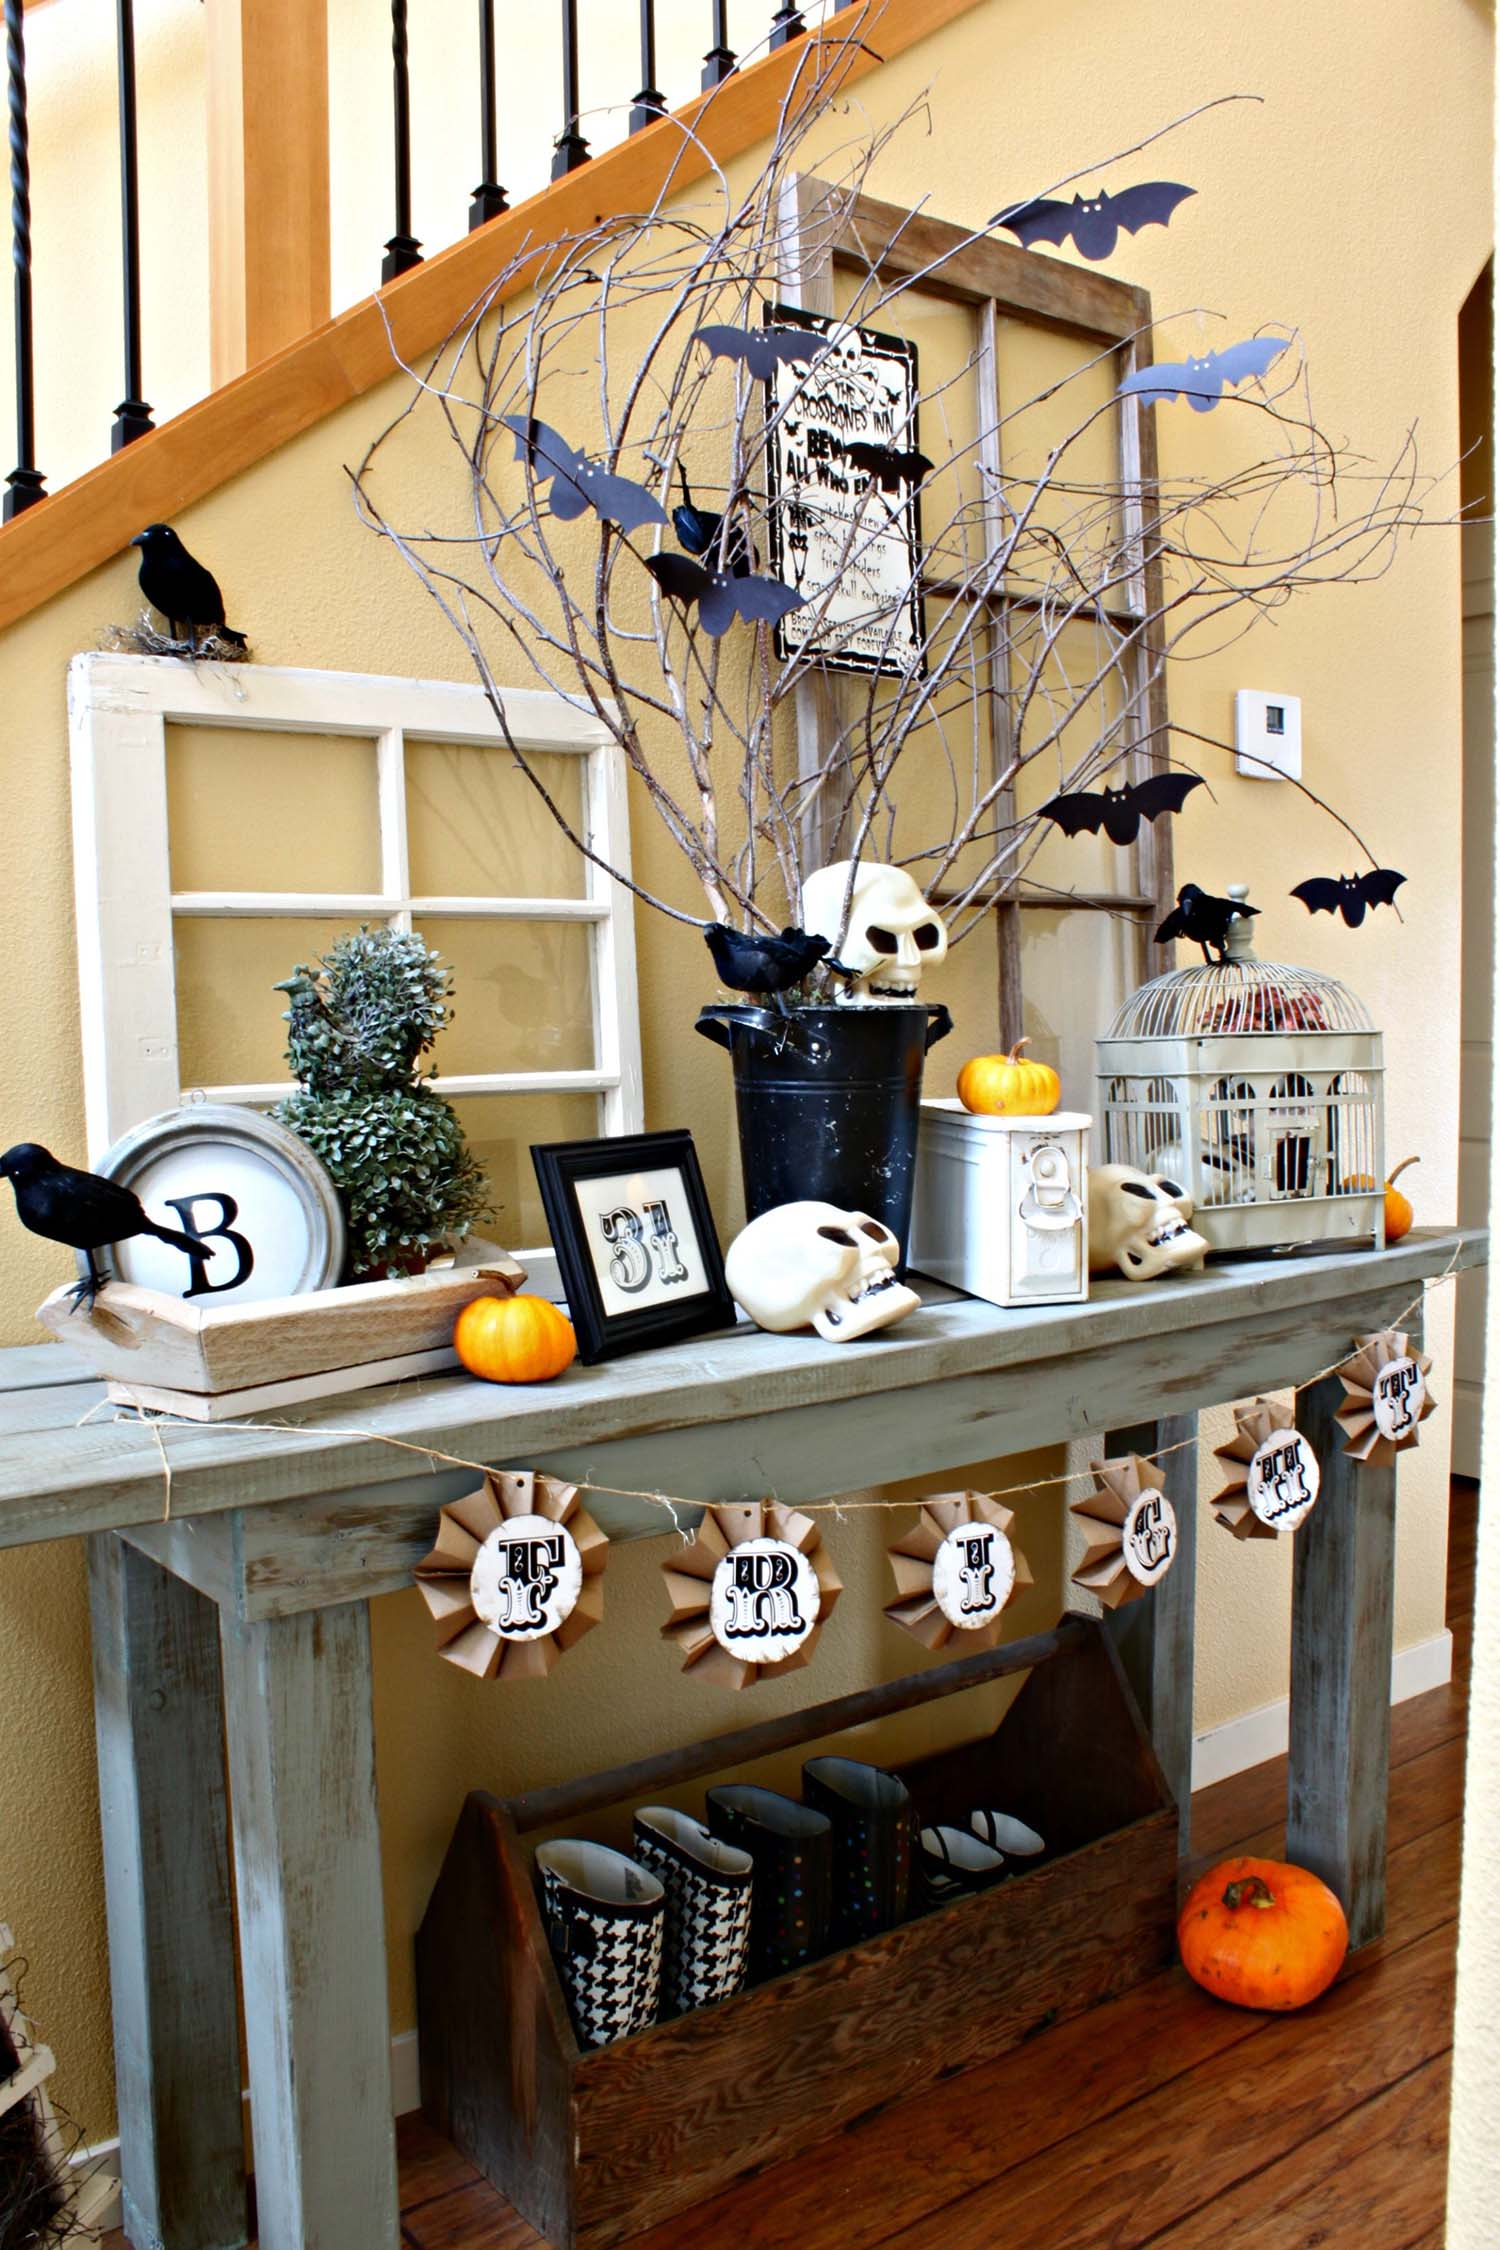 While we receive compensation when you click links to partners, they do not i. 20 Spooky Halloween Table Decoration Ideas for Your Home